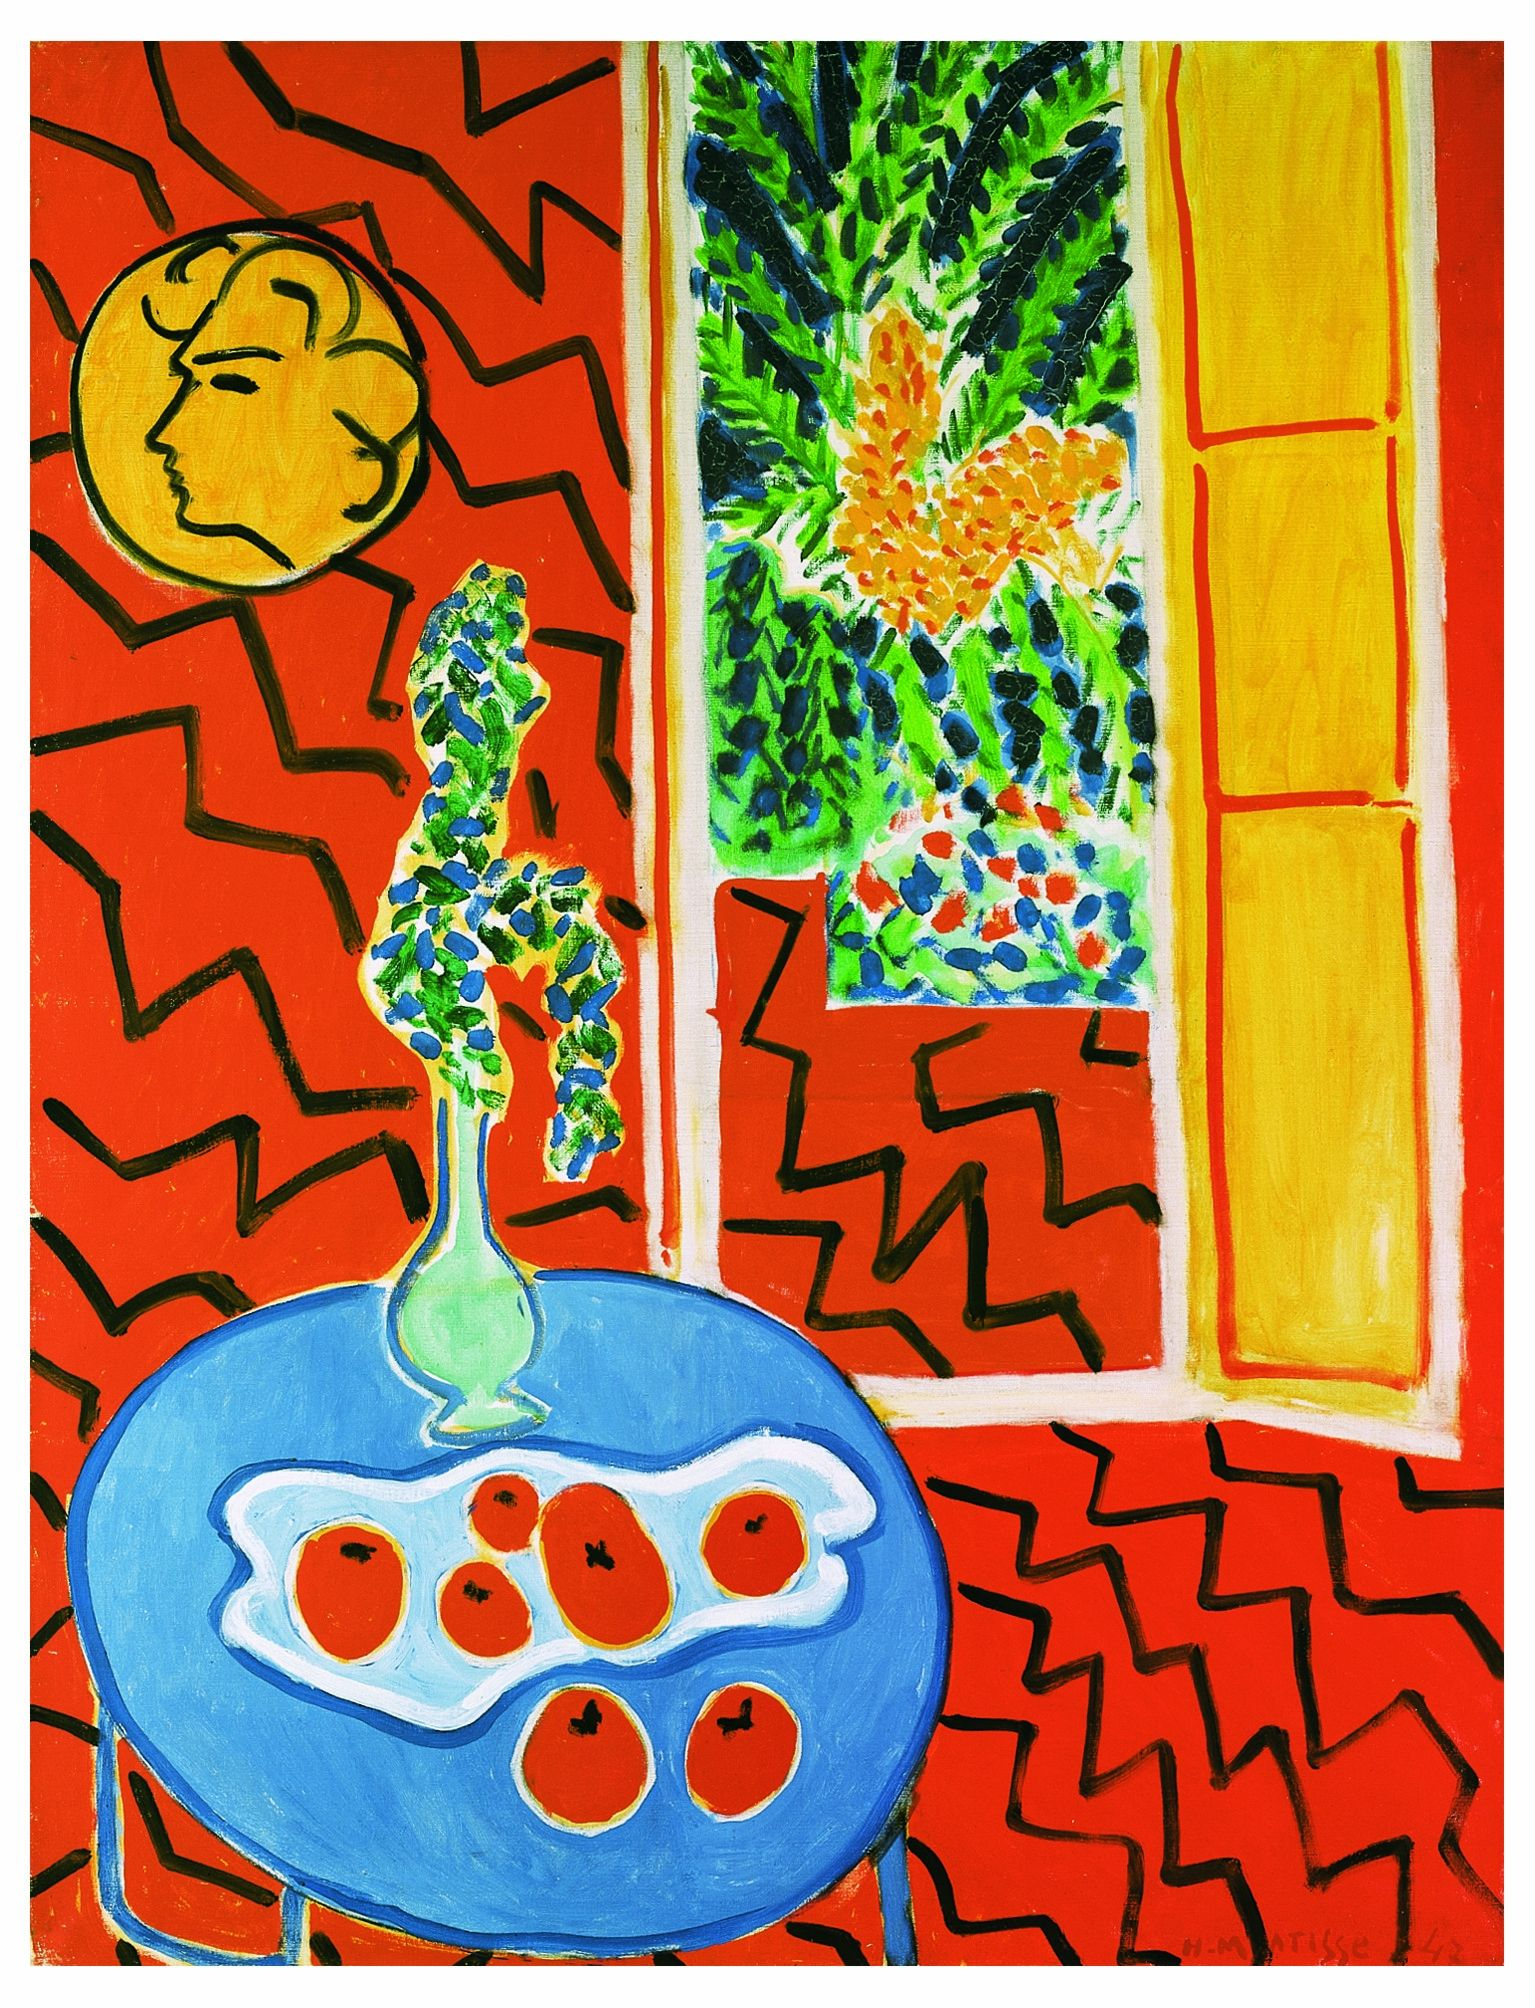 Henri matisse int rieur rouge 1947 kunst pinterest for Interieur rouge matisse